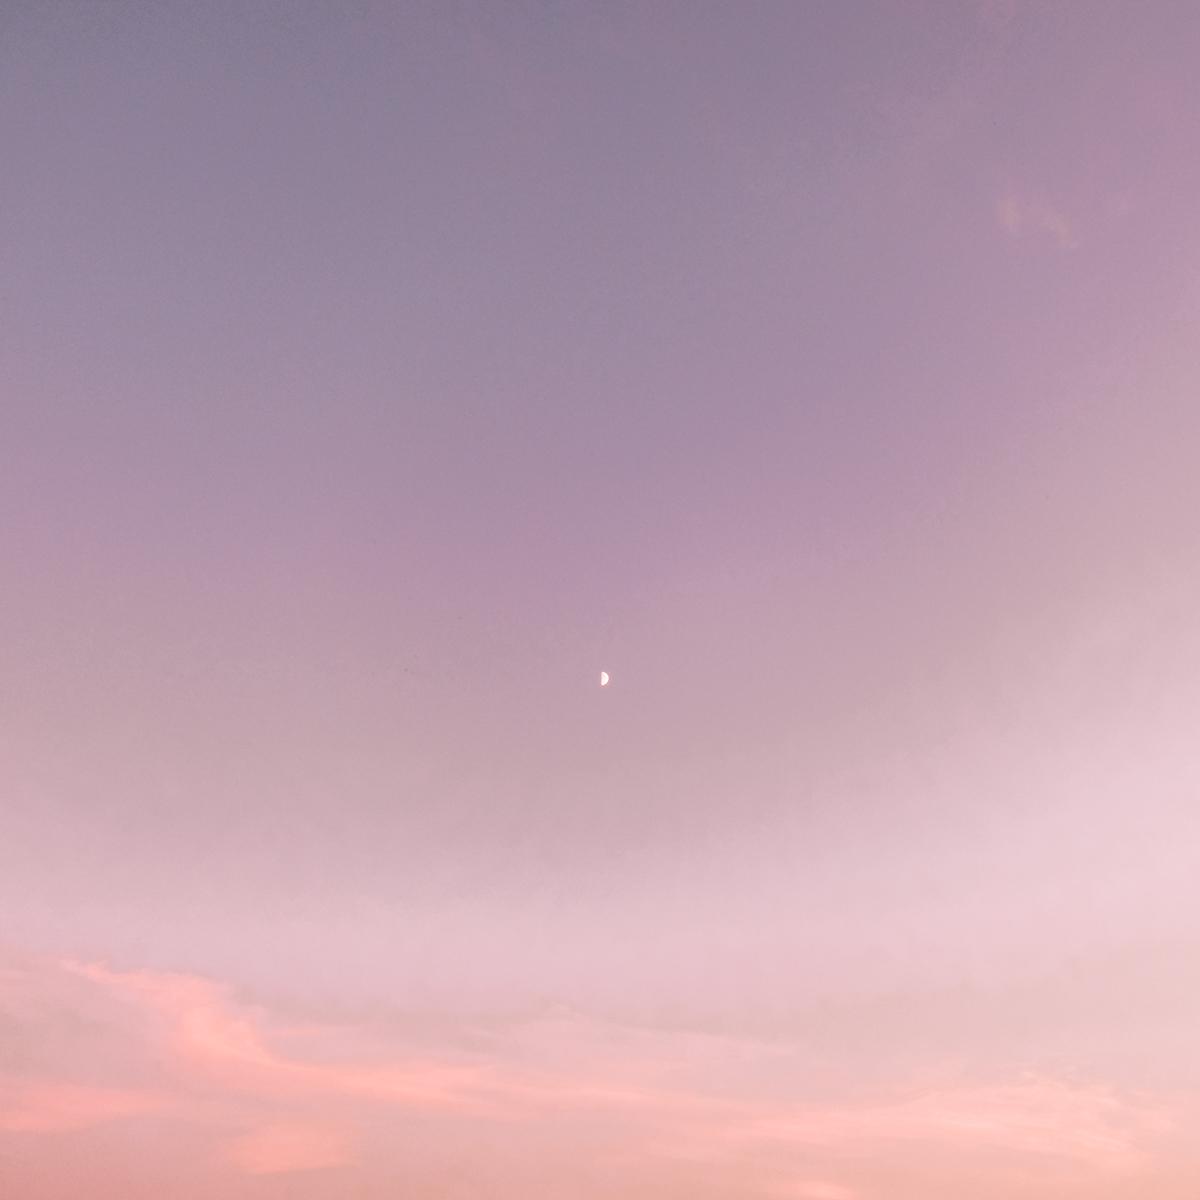 moon_and_purple_sky